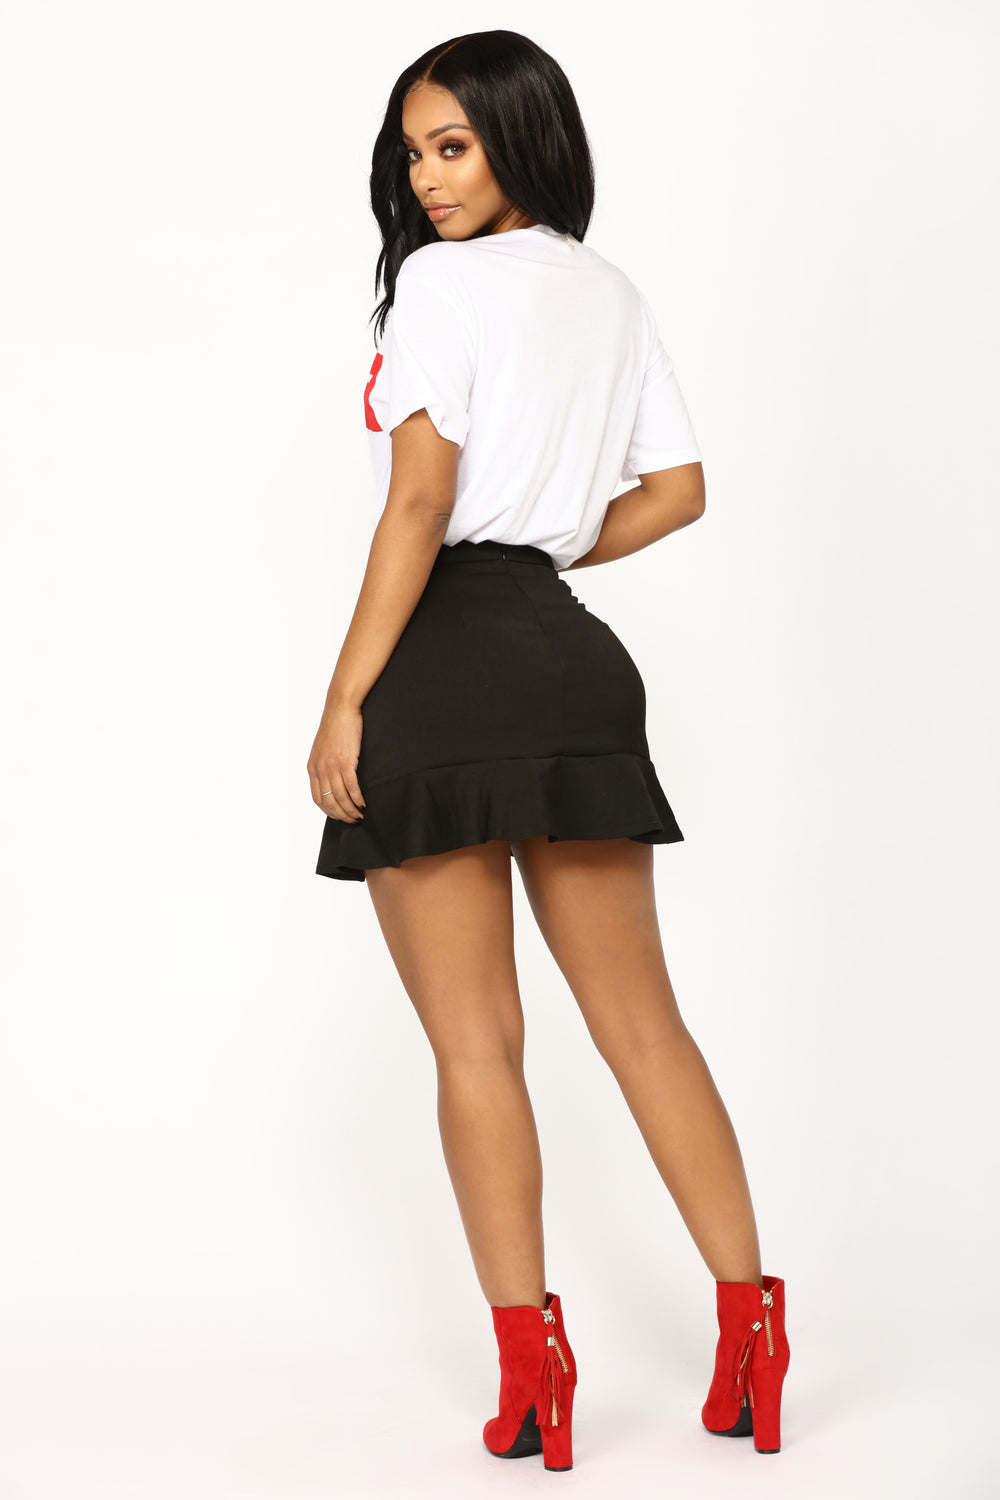 My Favorite Ruffle Skirt - Black